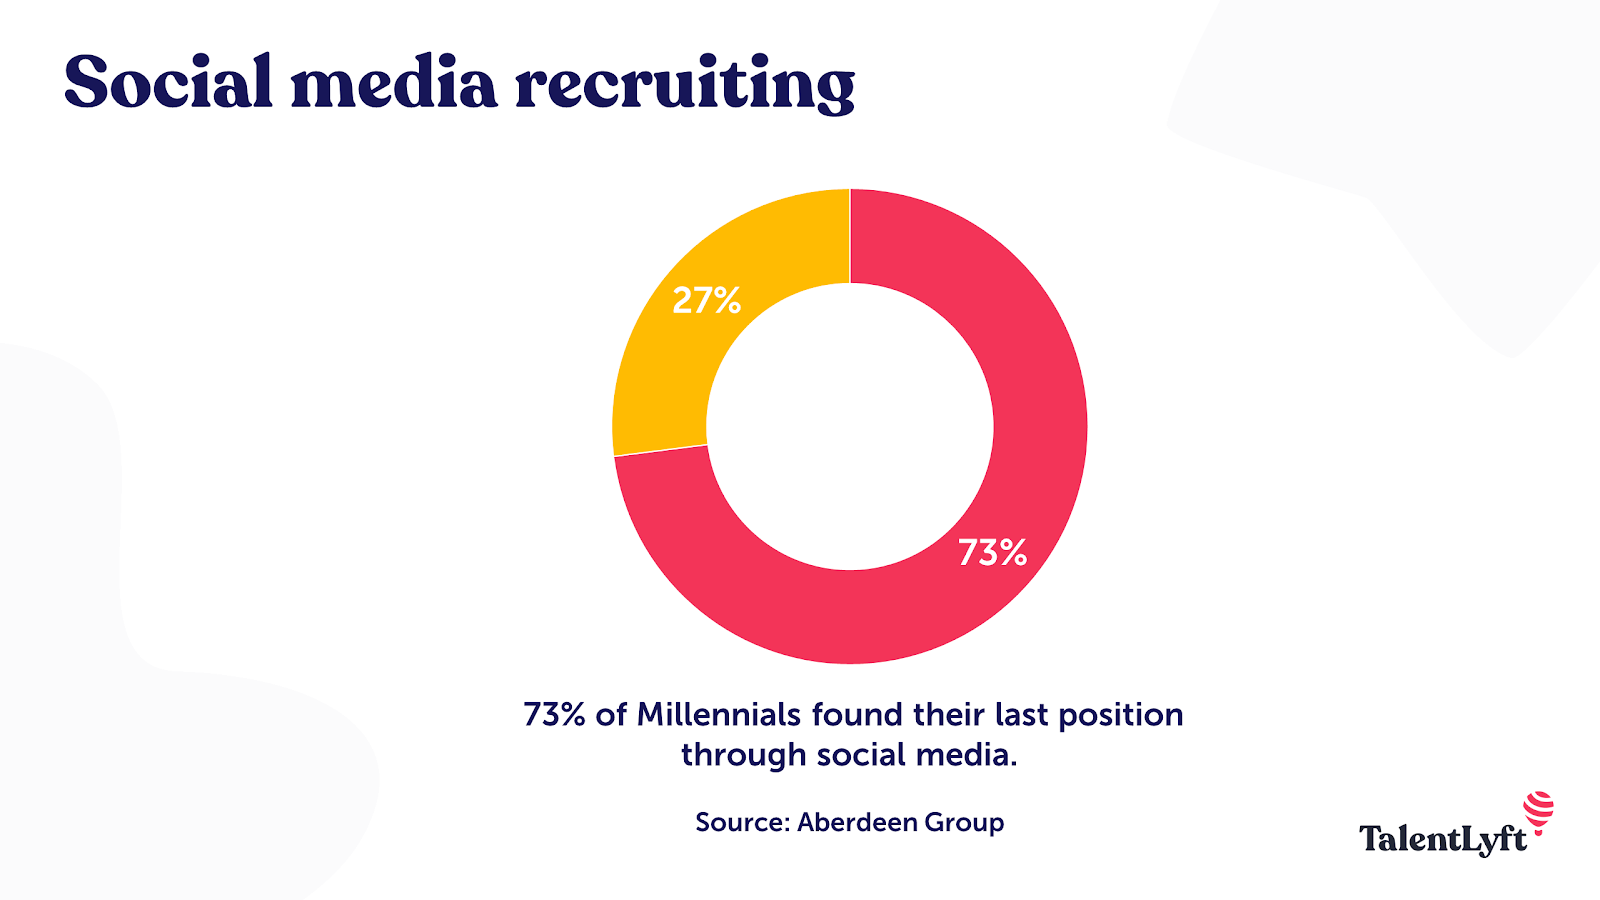 Social media recruiting the best way to attract Millennials